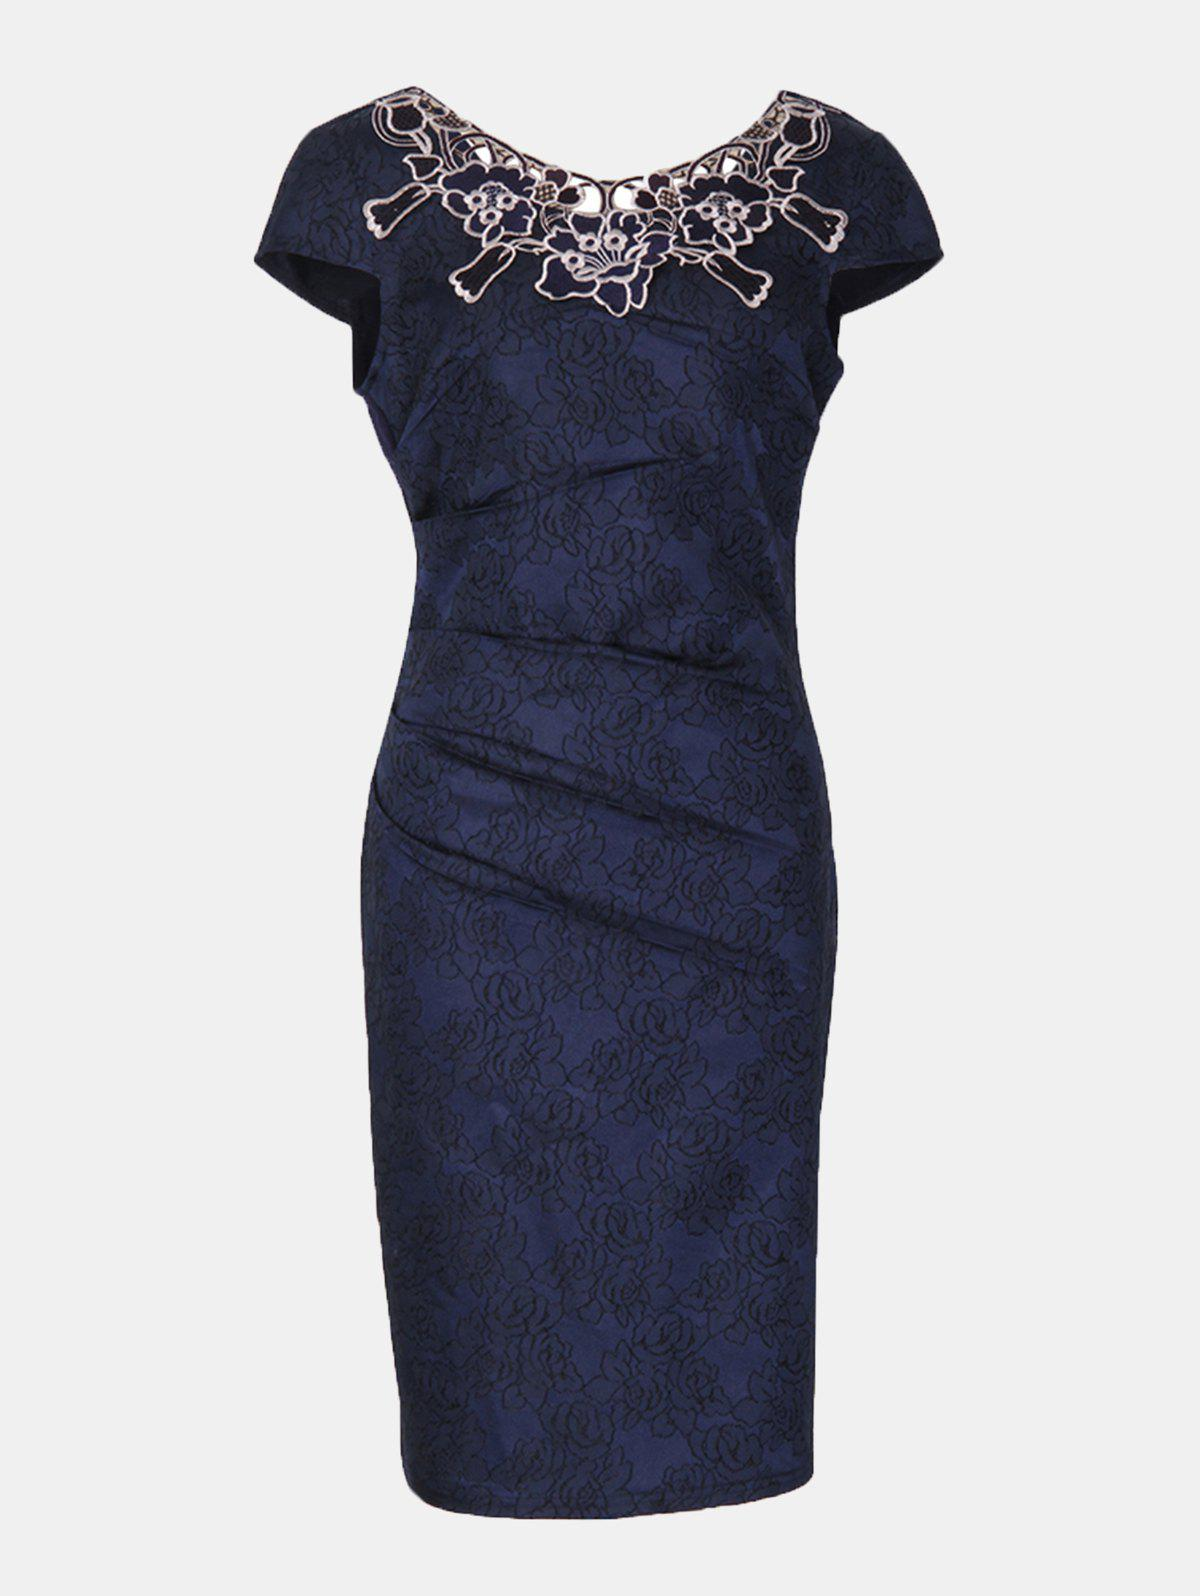 New Floral Embroidered Short Sleeve Pencil Dress